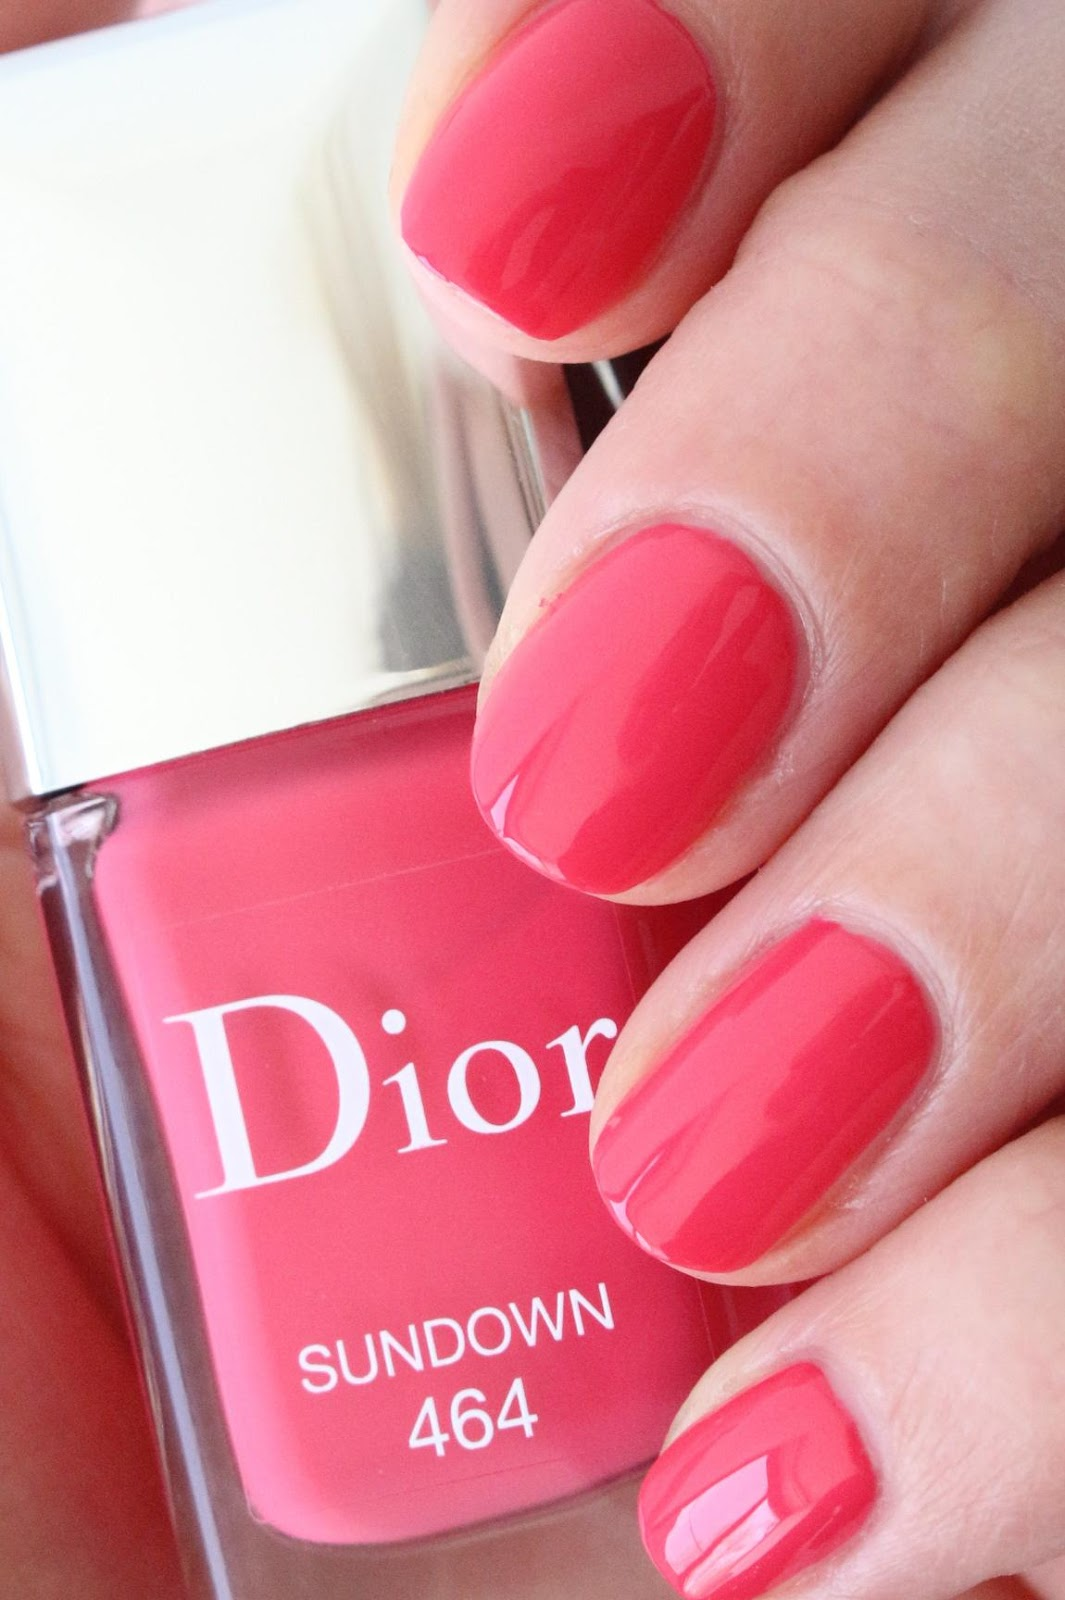 Dior Vernis 464 Sundown